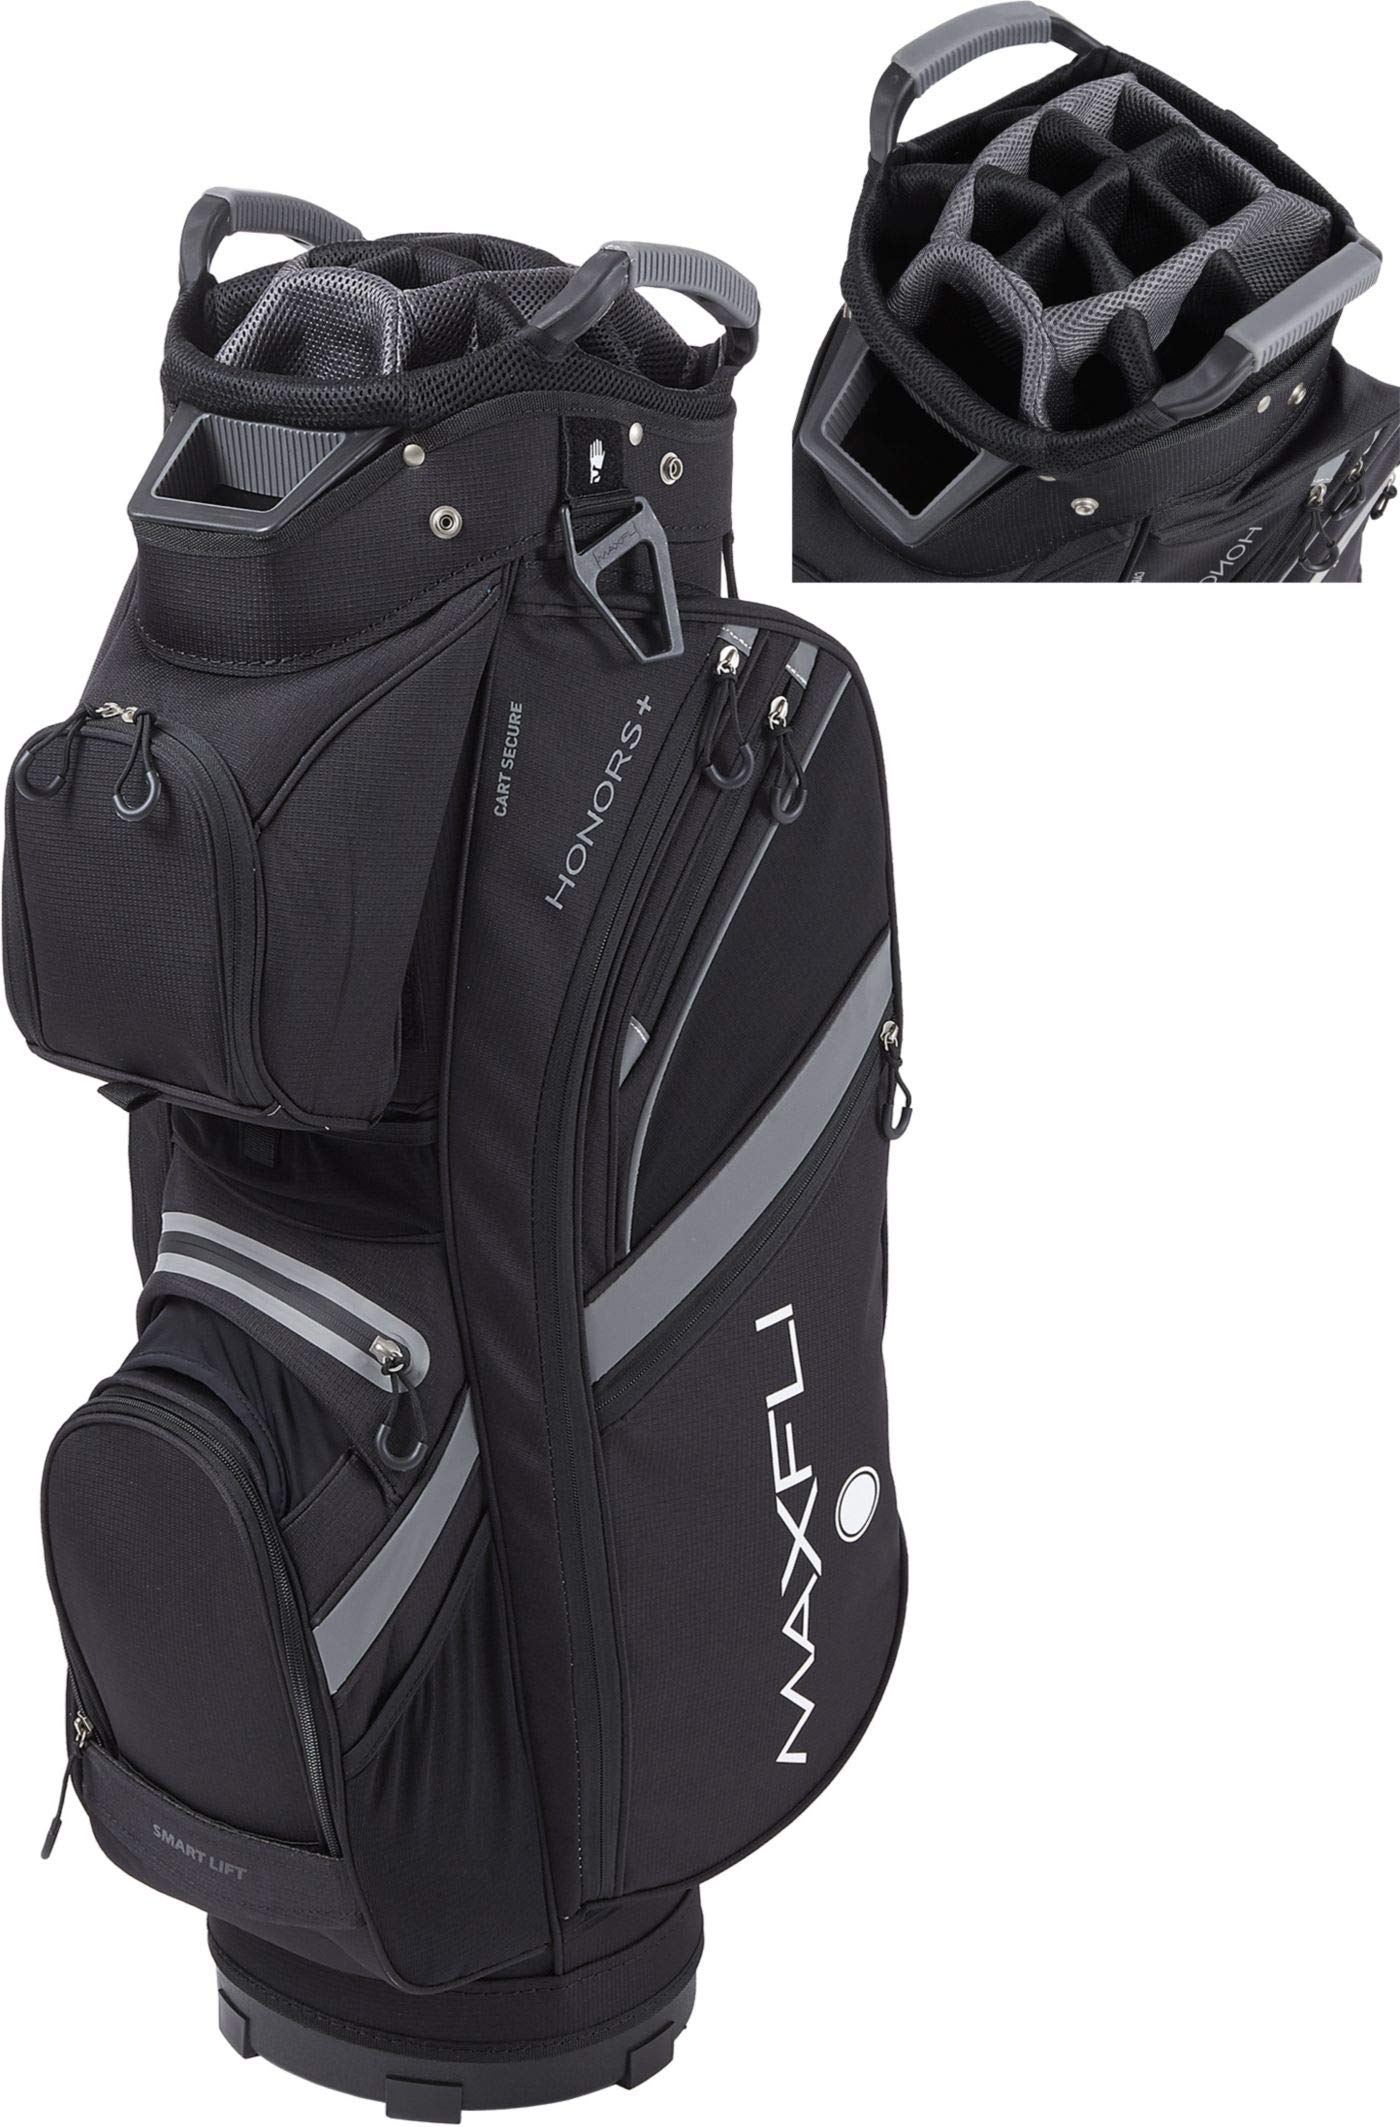 Maxfli 2019 Honors Plus Golf Cart Bag Lightweight 14-Way Top 3 Dividers w/Insulated Pocket (Black)